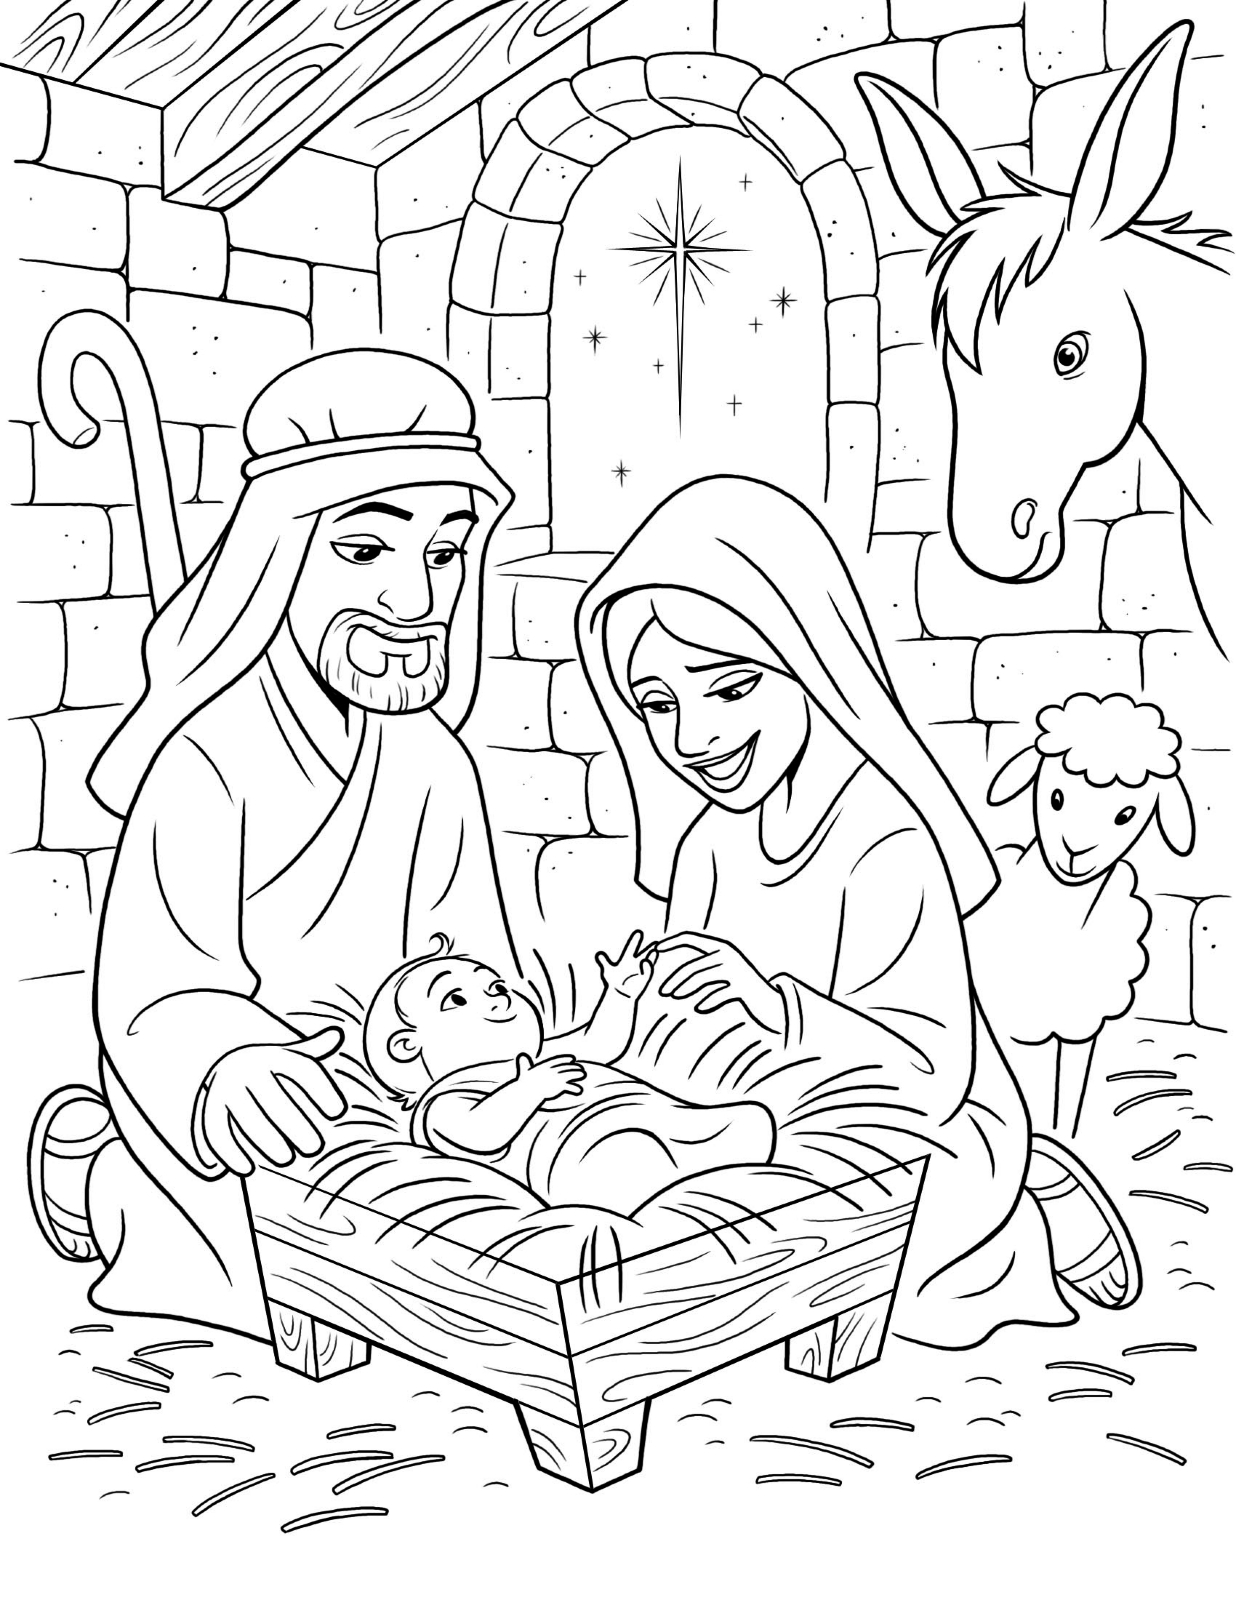 coloring pages baby jesus in manger baby jesus in the manger coloring pages at getcolorings baby jesus coloring pages manger in